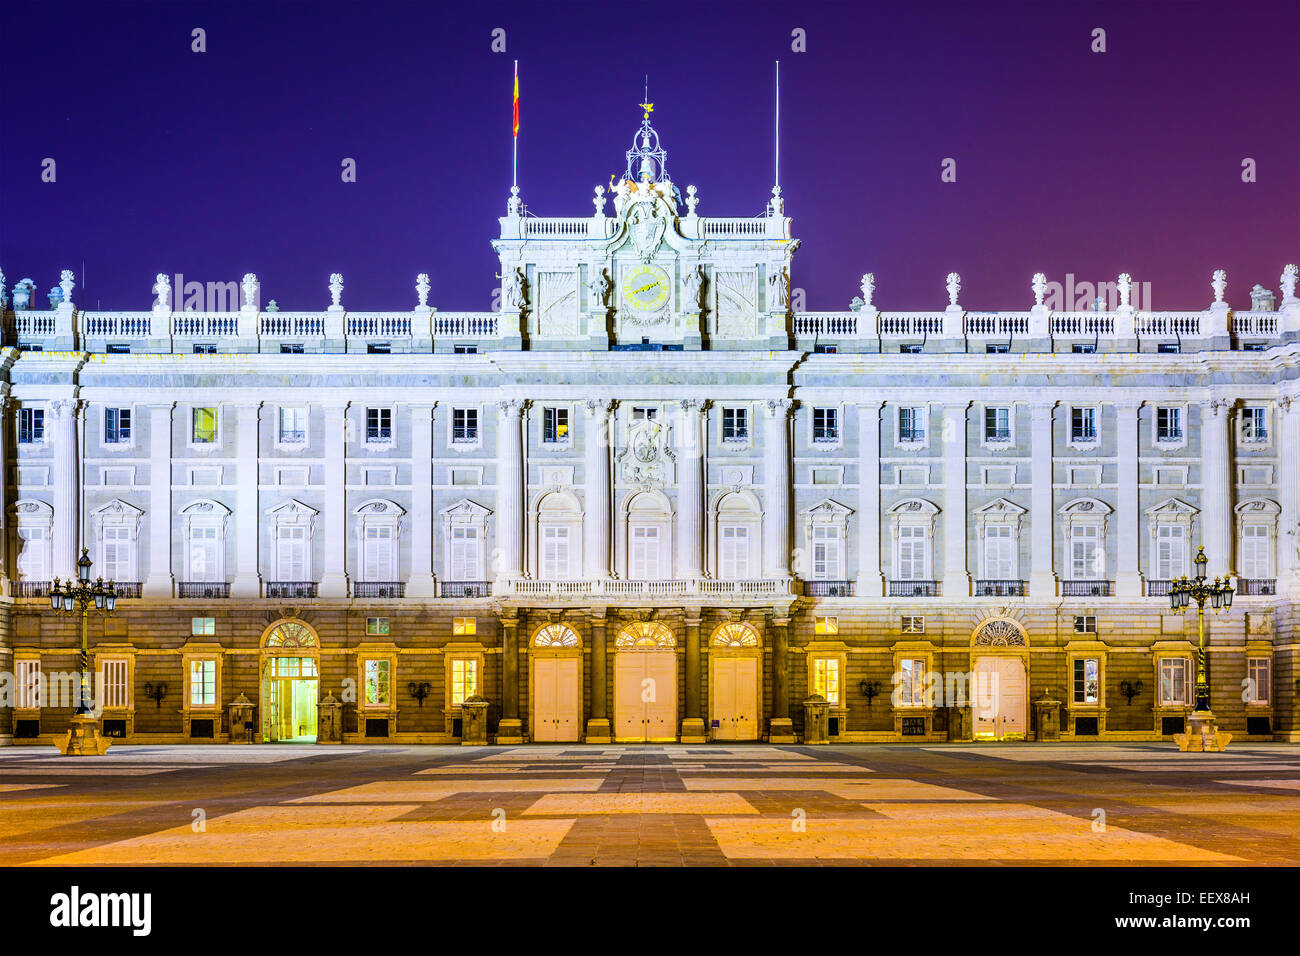 Madrid, Spain at the Royal Palace at night. - Stock Image